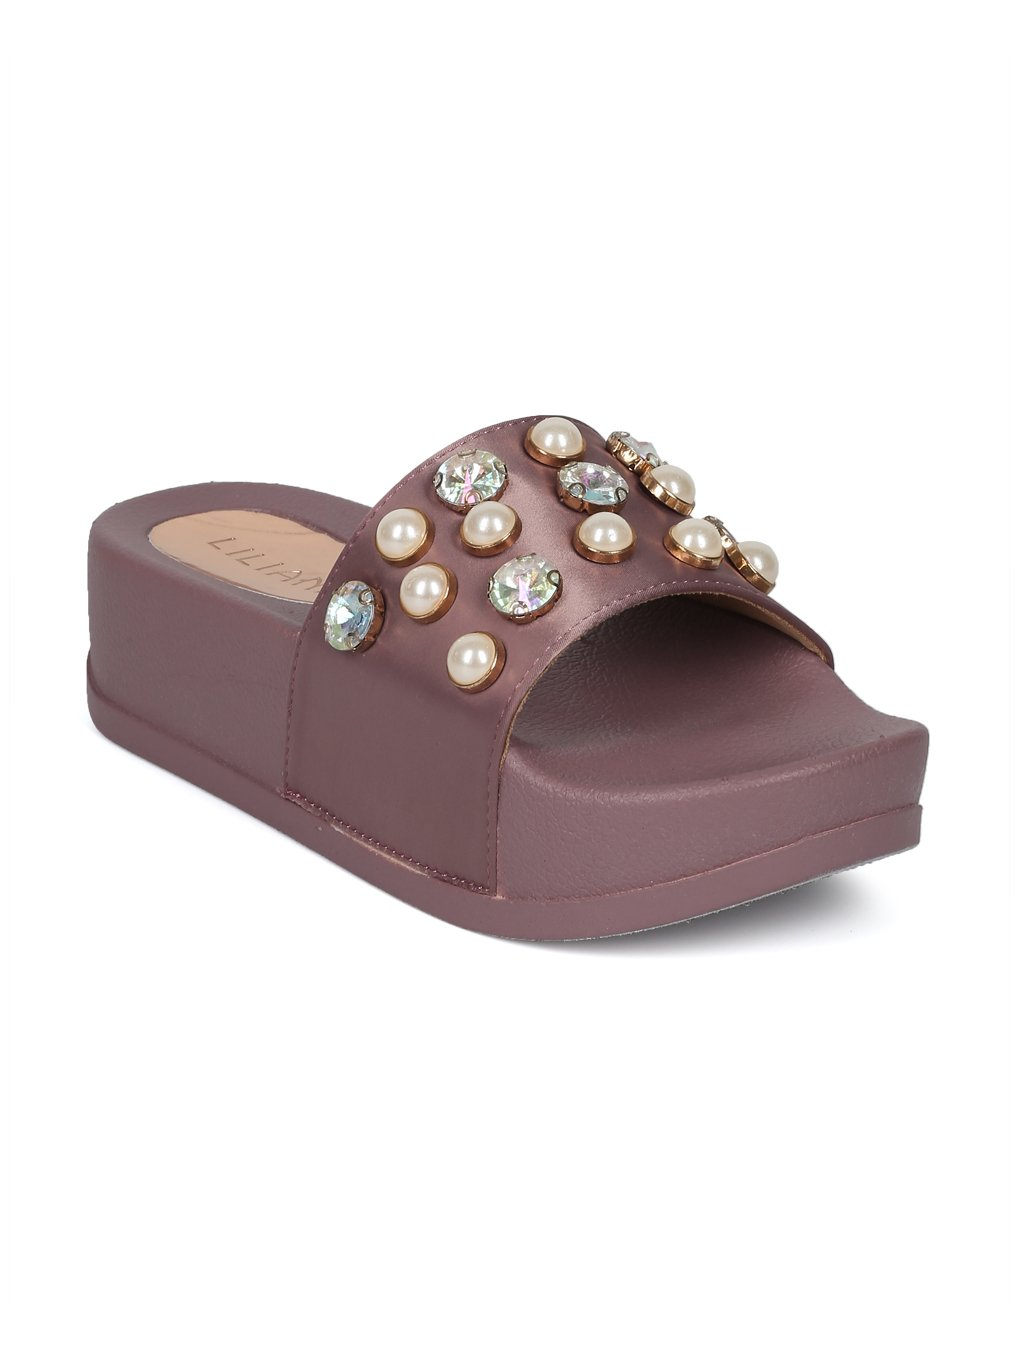 Alrisco Women Satin Faux Pearl and Gems Platform Footbed Slide HG26 B0799BTC5Z 7 M US|Mauve Satin